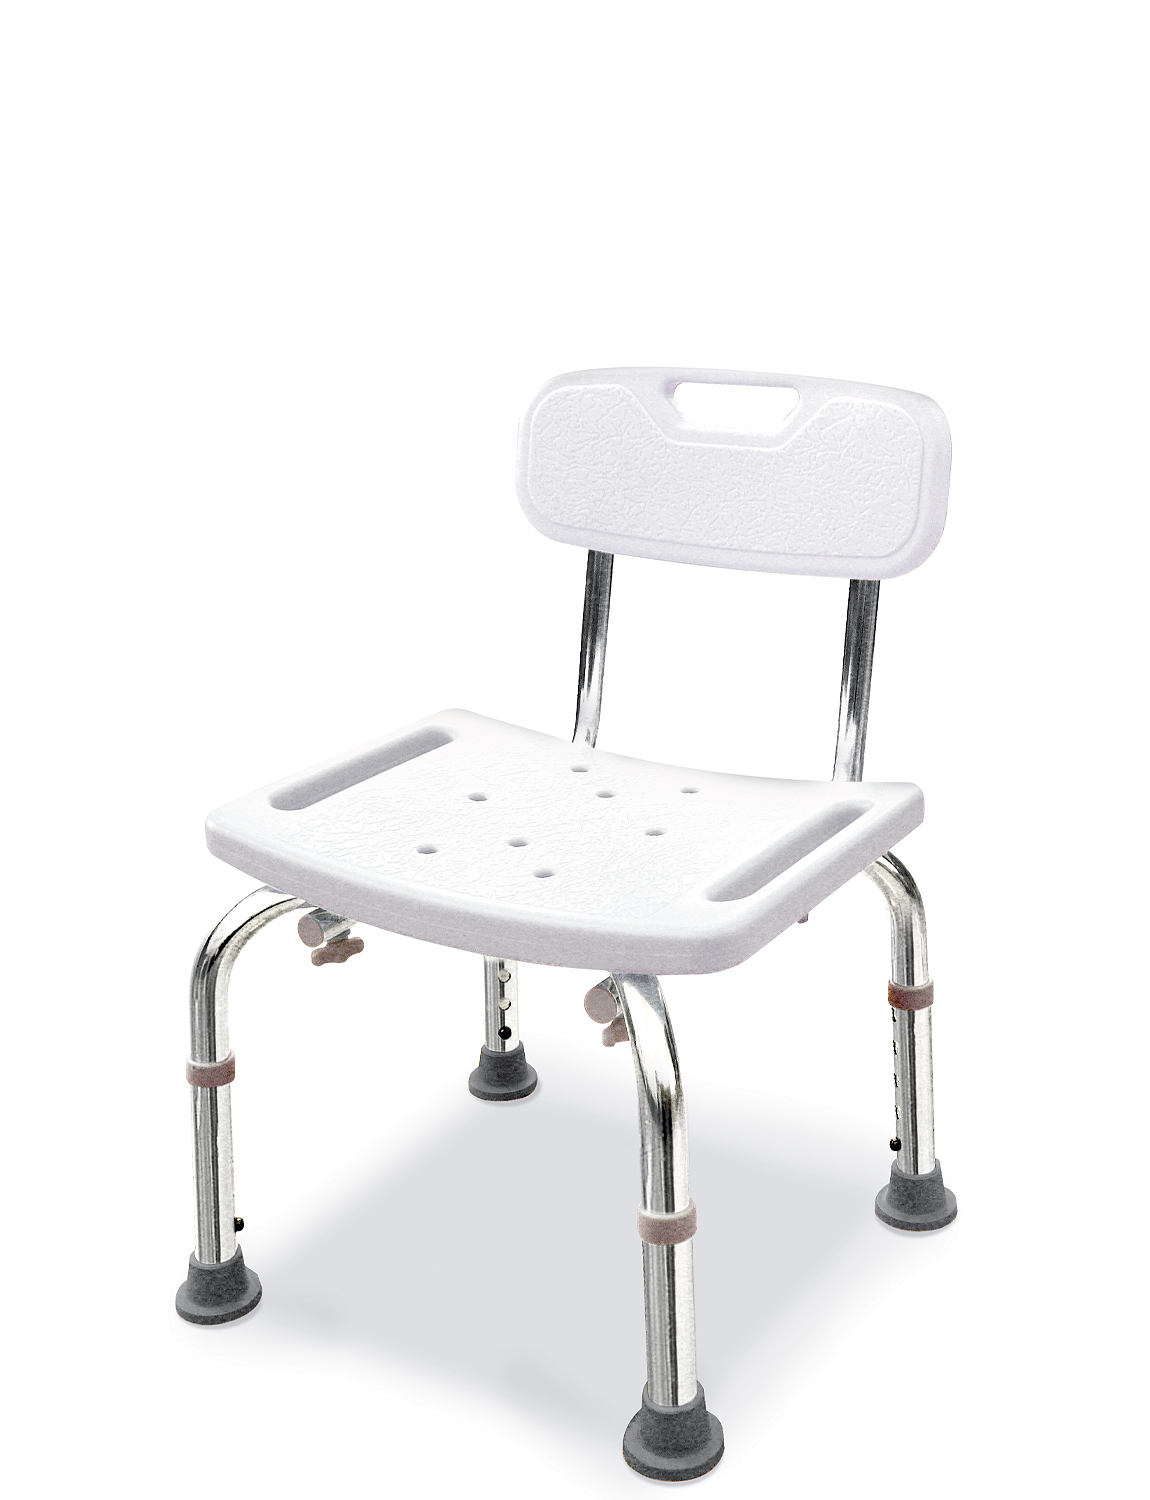 Shower Seat With Back Rest - White